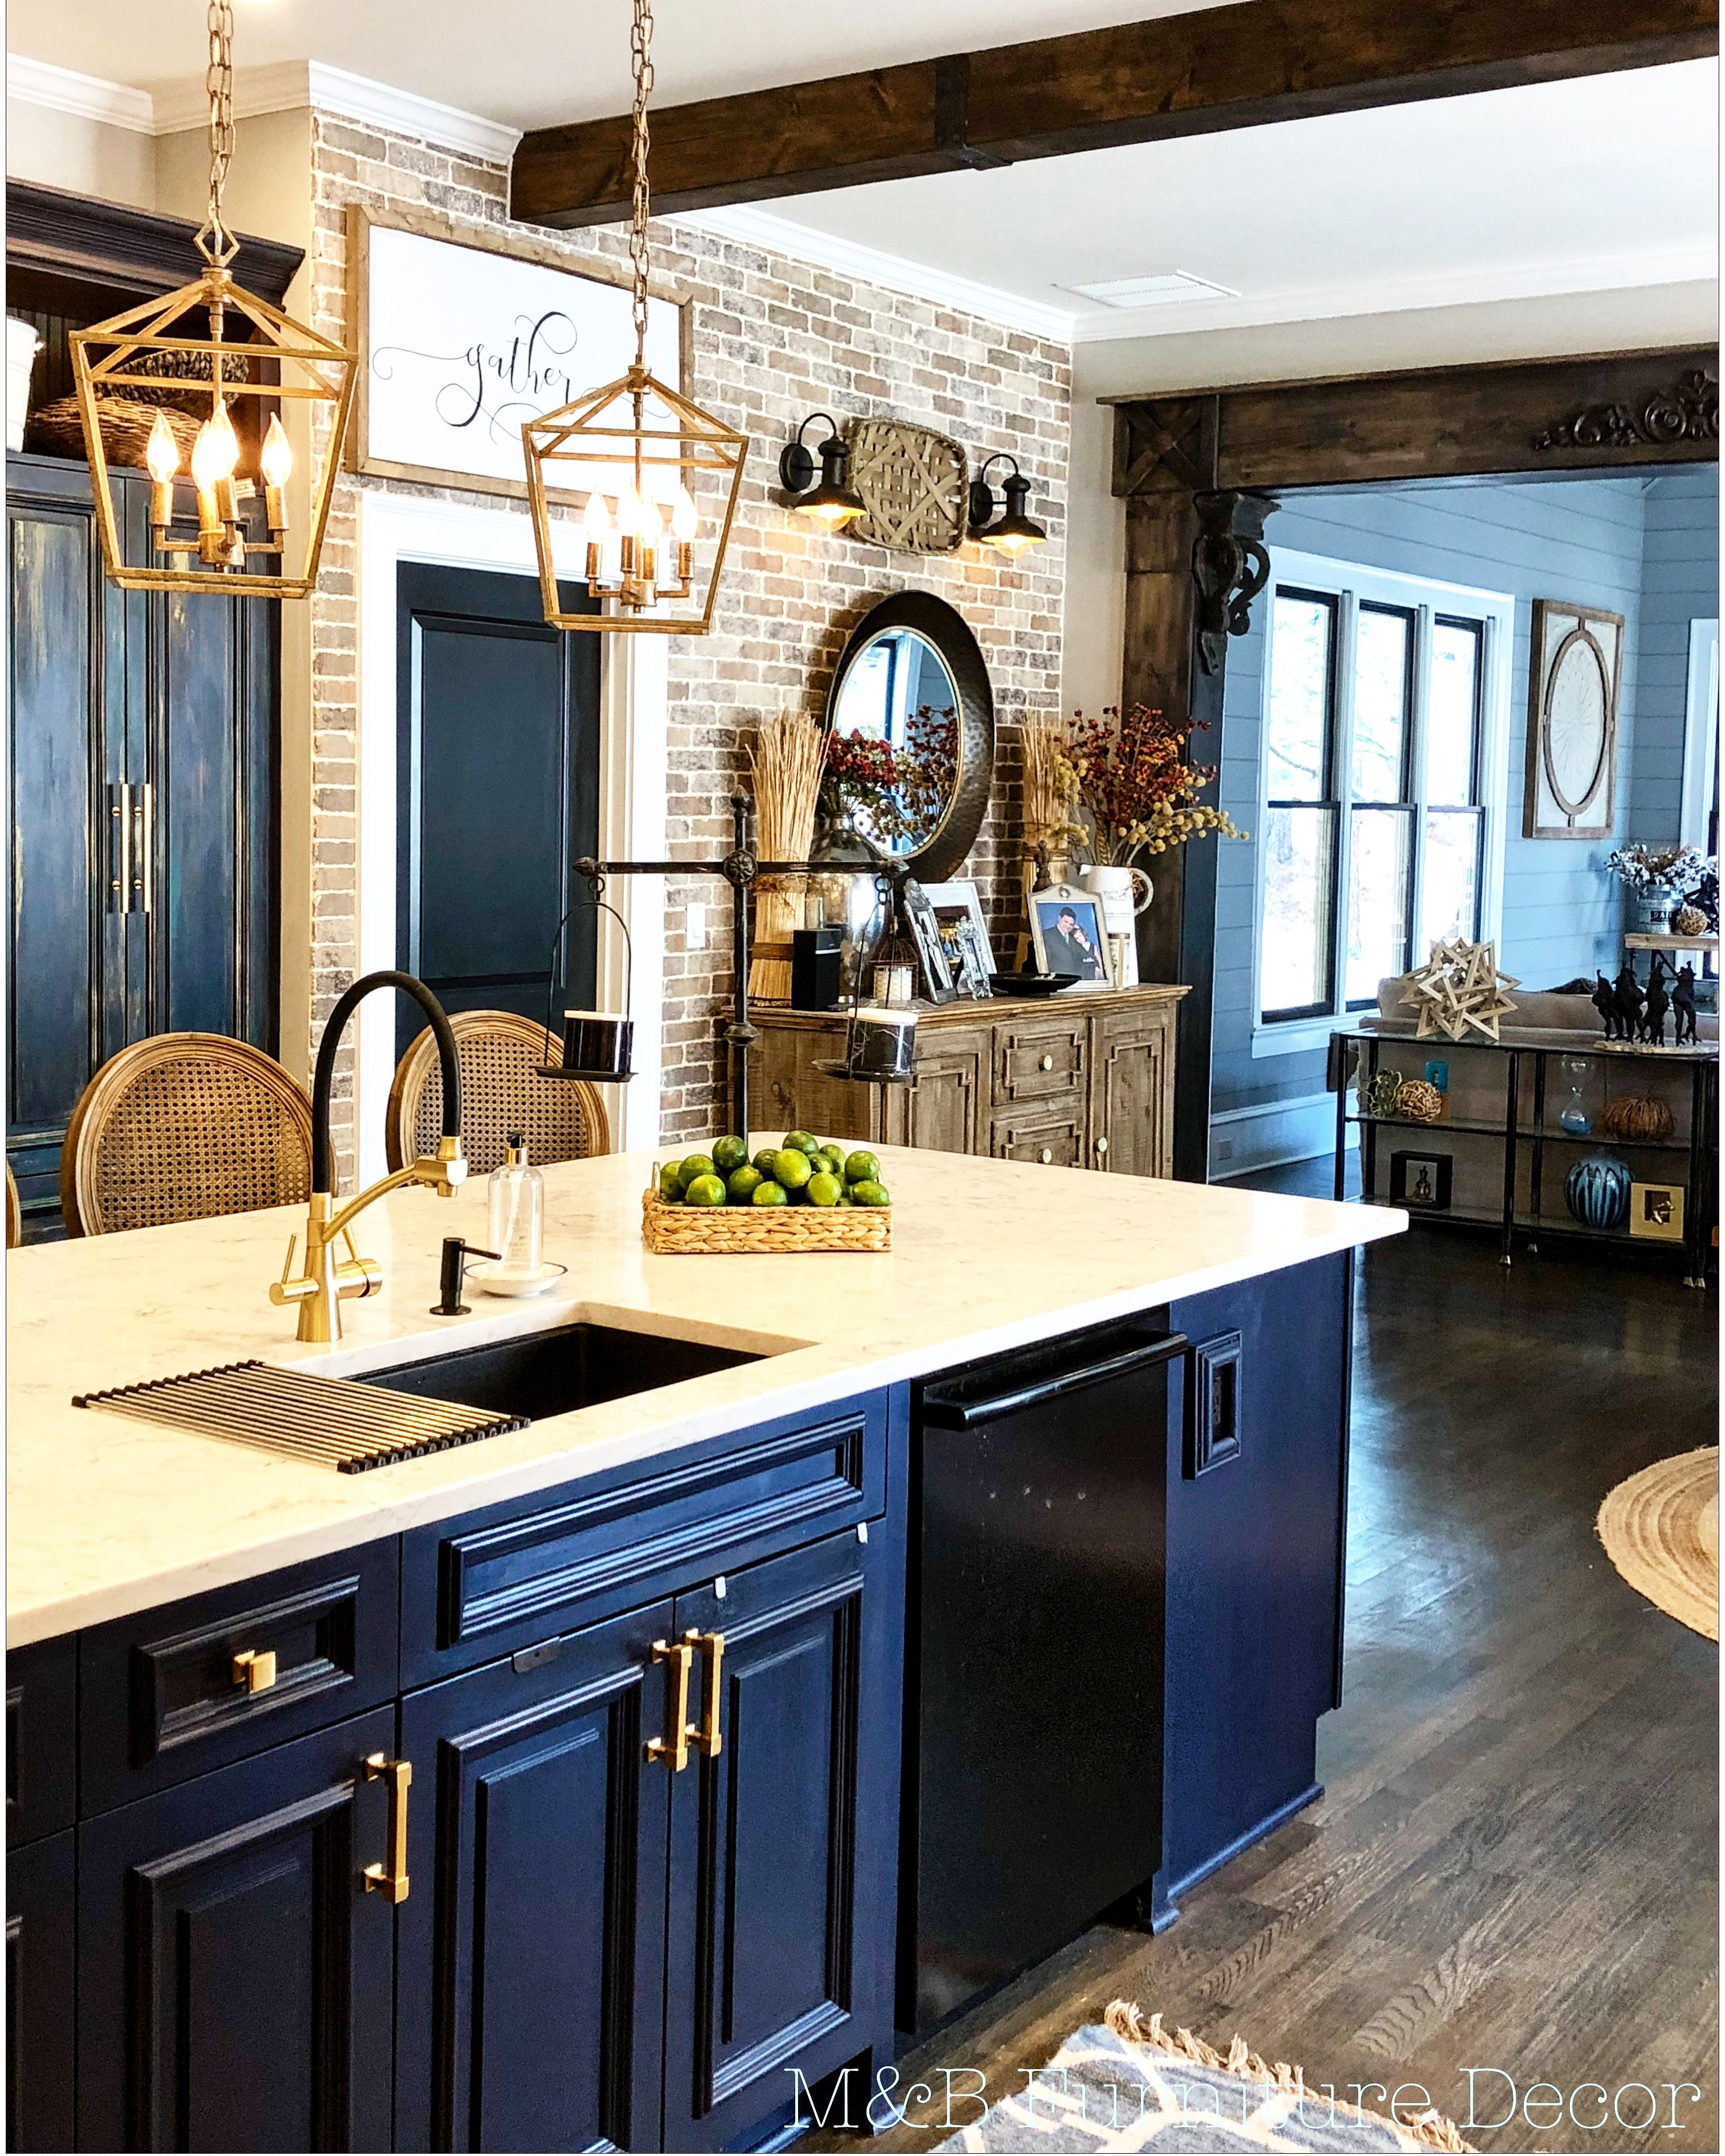 Oversized Doorway Offset With Enhanced Appliques Corbels Moulding Use On Kitchen Side Of Barn Doors Blue Kitchen Cabinets Furniture Decor Home Decor